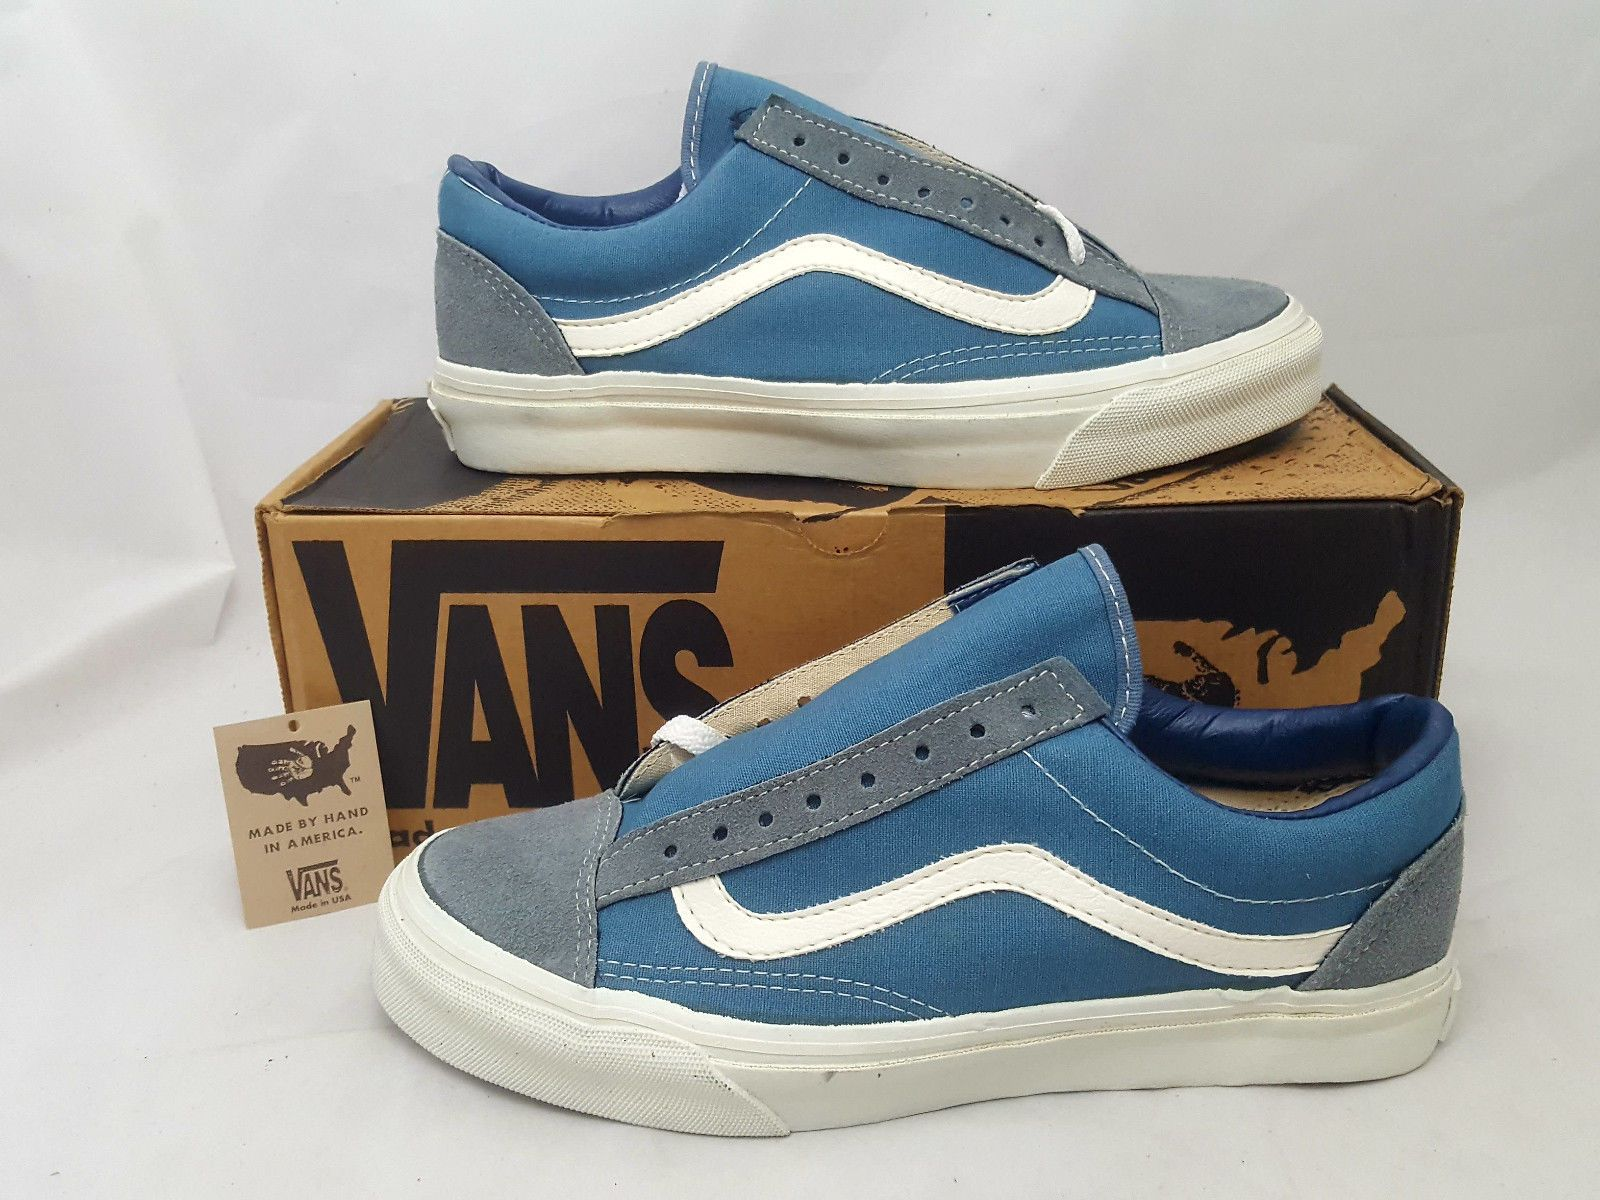 dqm x vans brownstone chaussures buy it now england